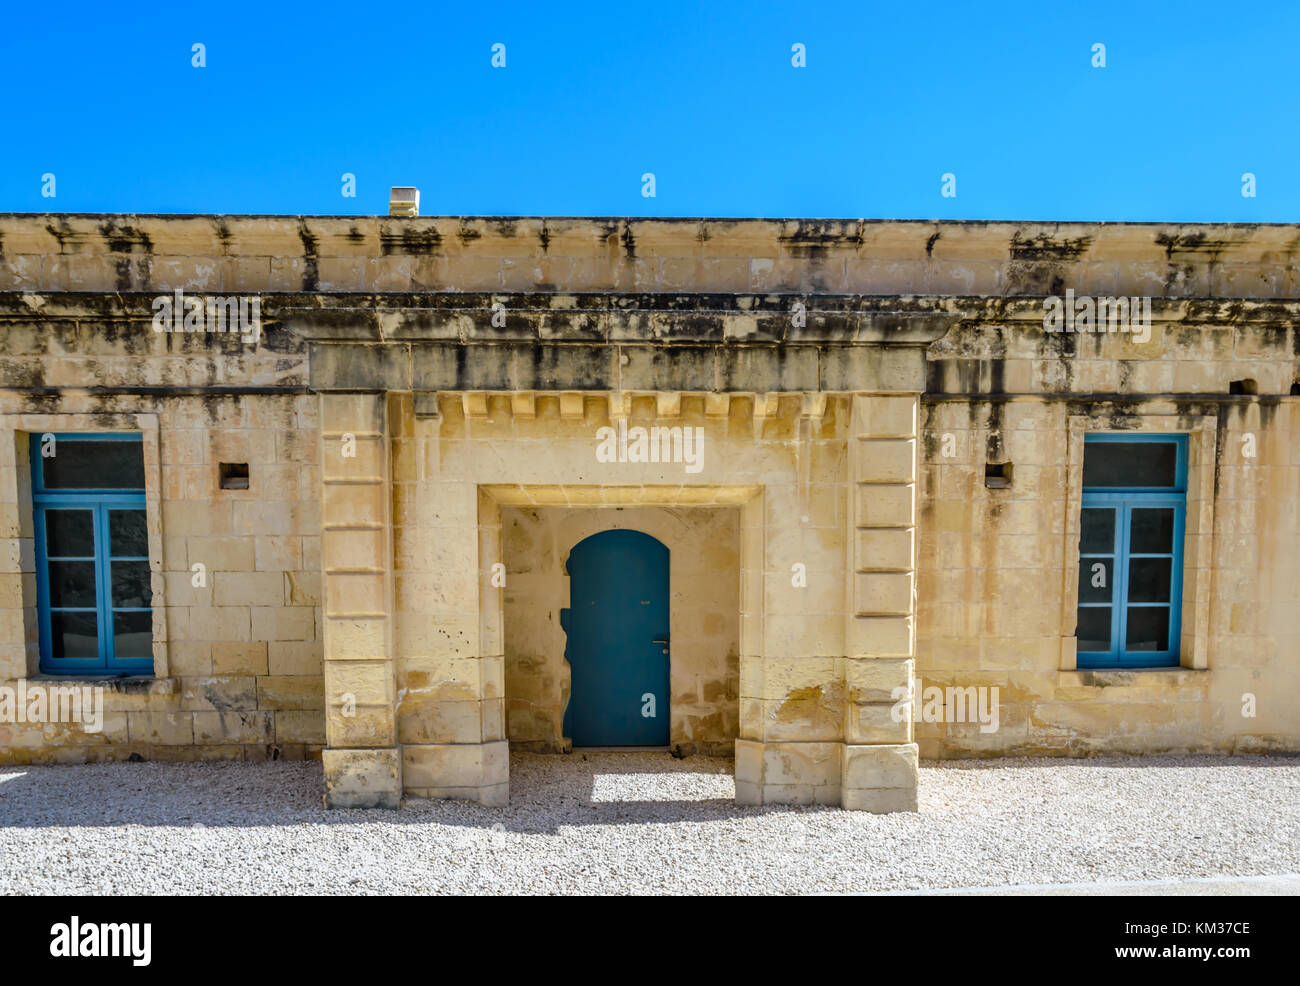 Barrack at Fort St Angelo - Stock Image